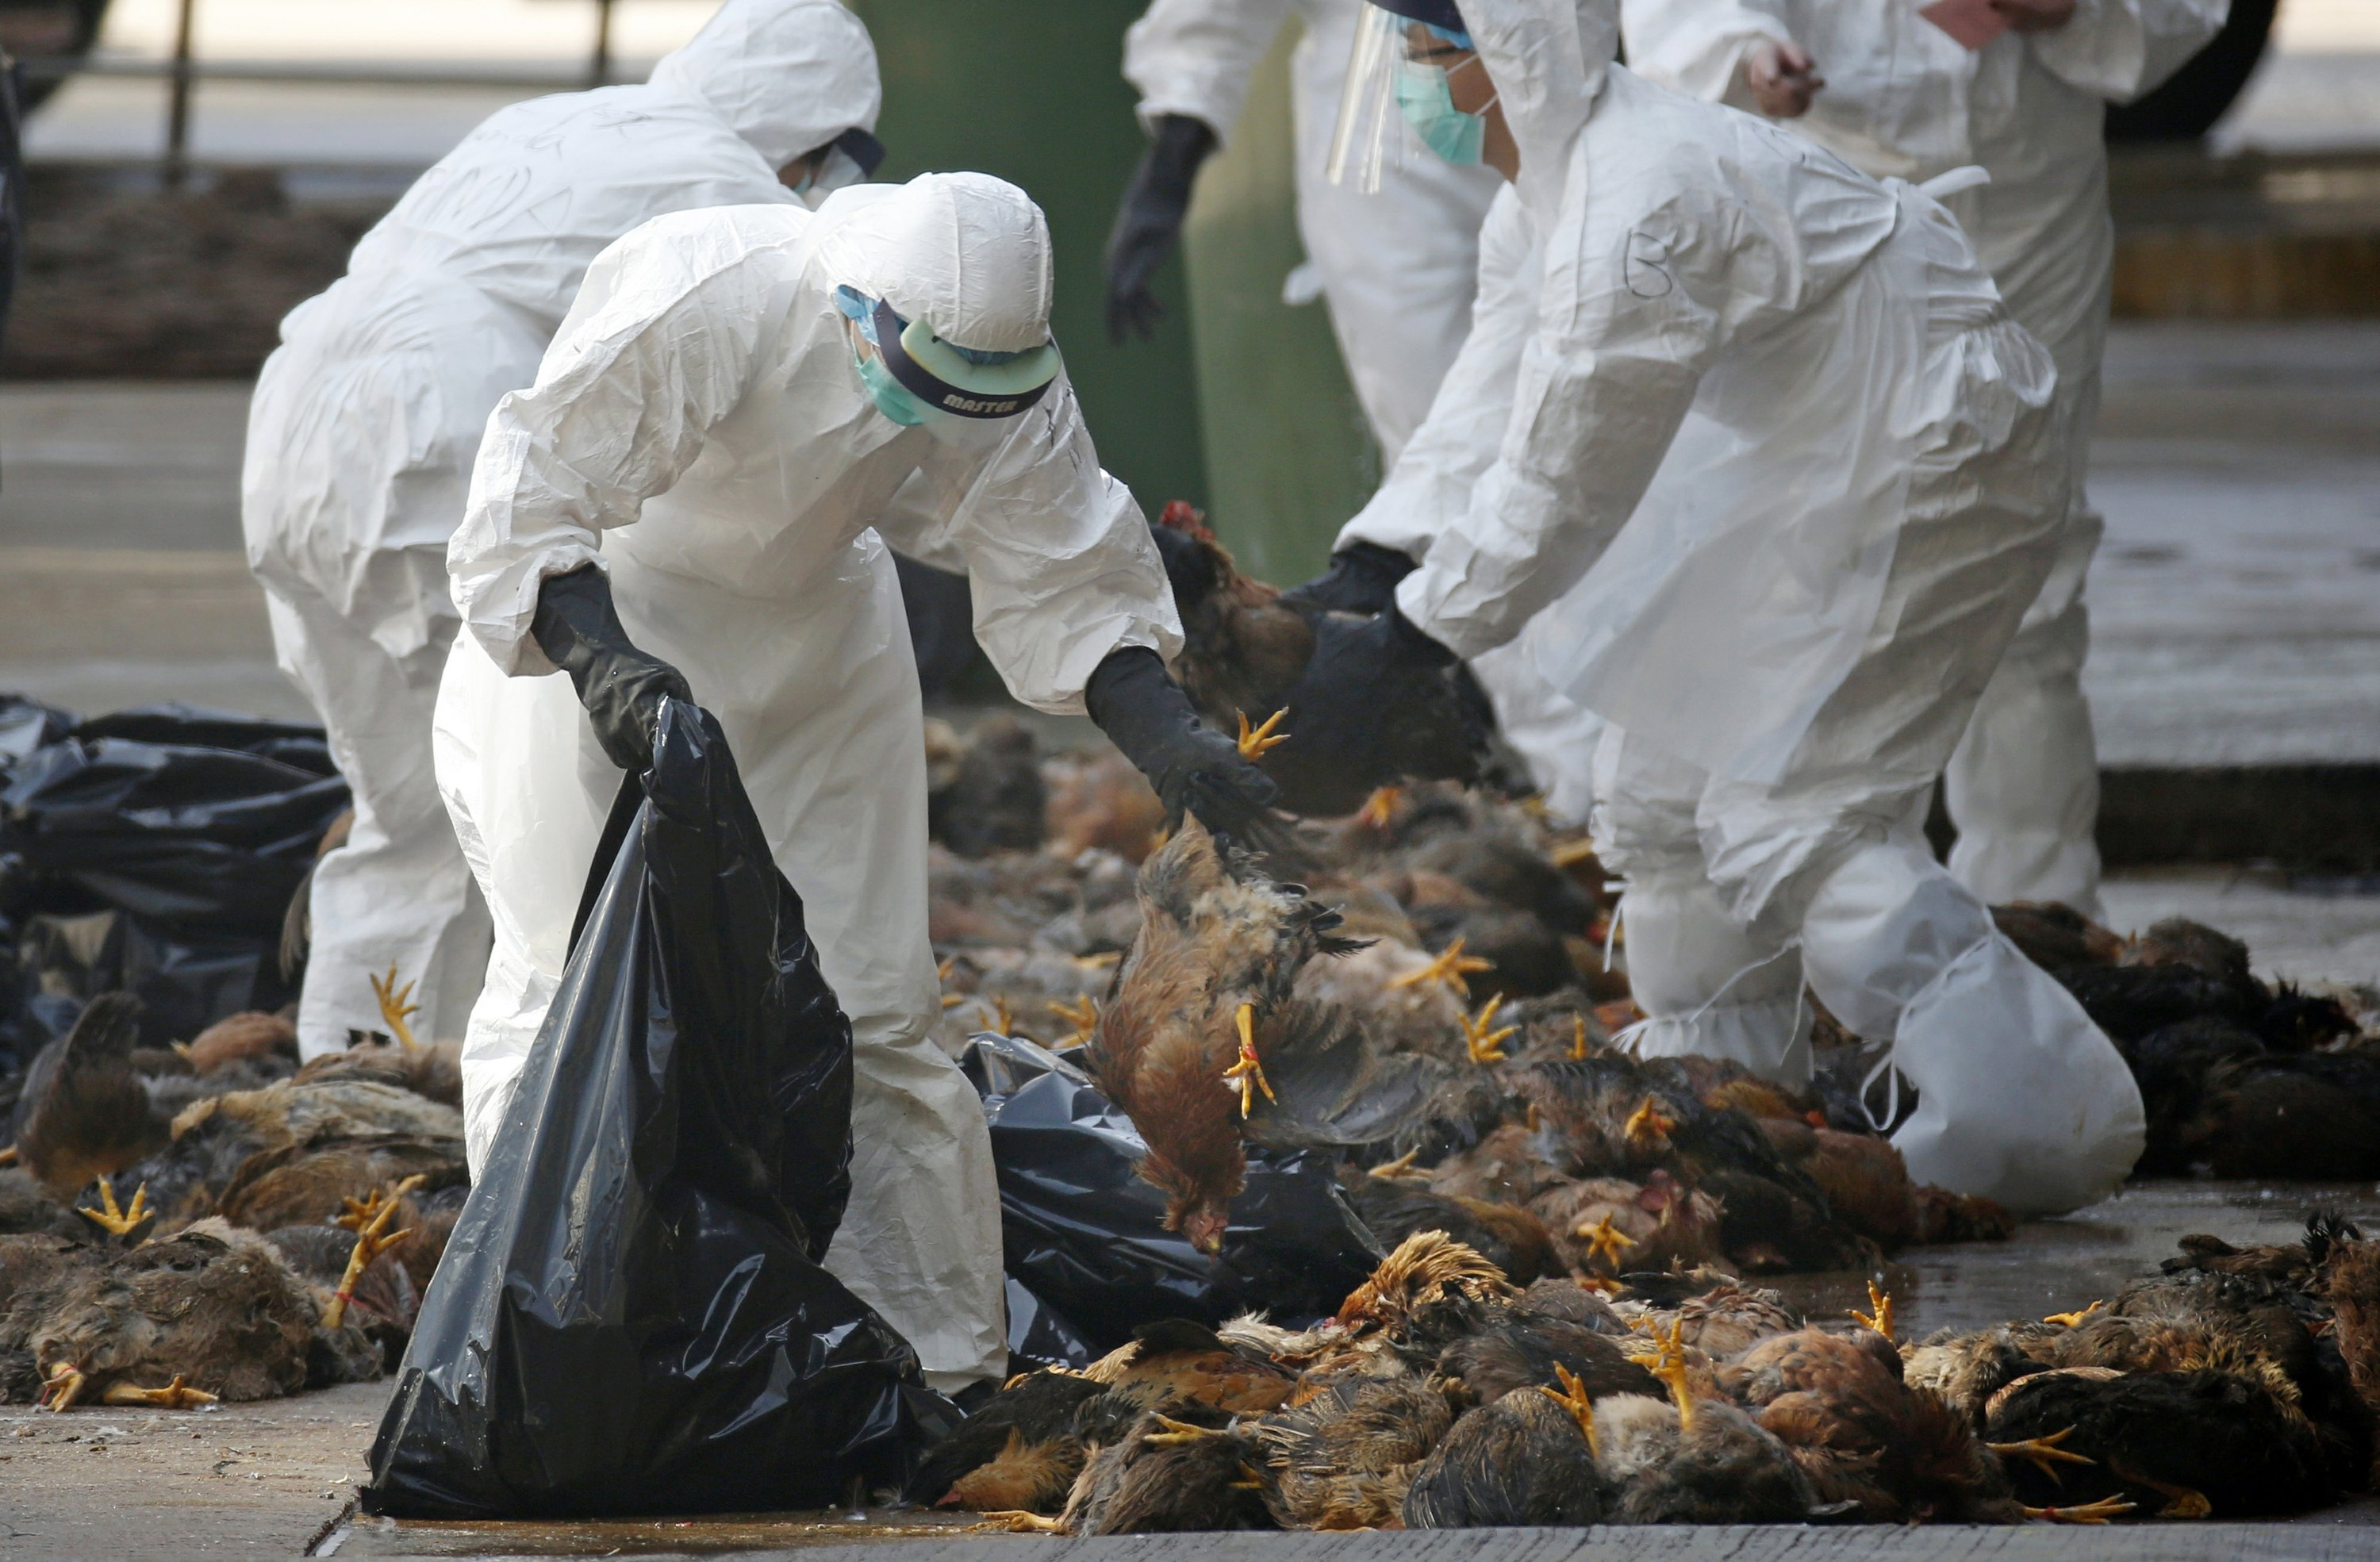 UN sees bird flu changes but calls risk of people spread low